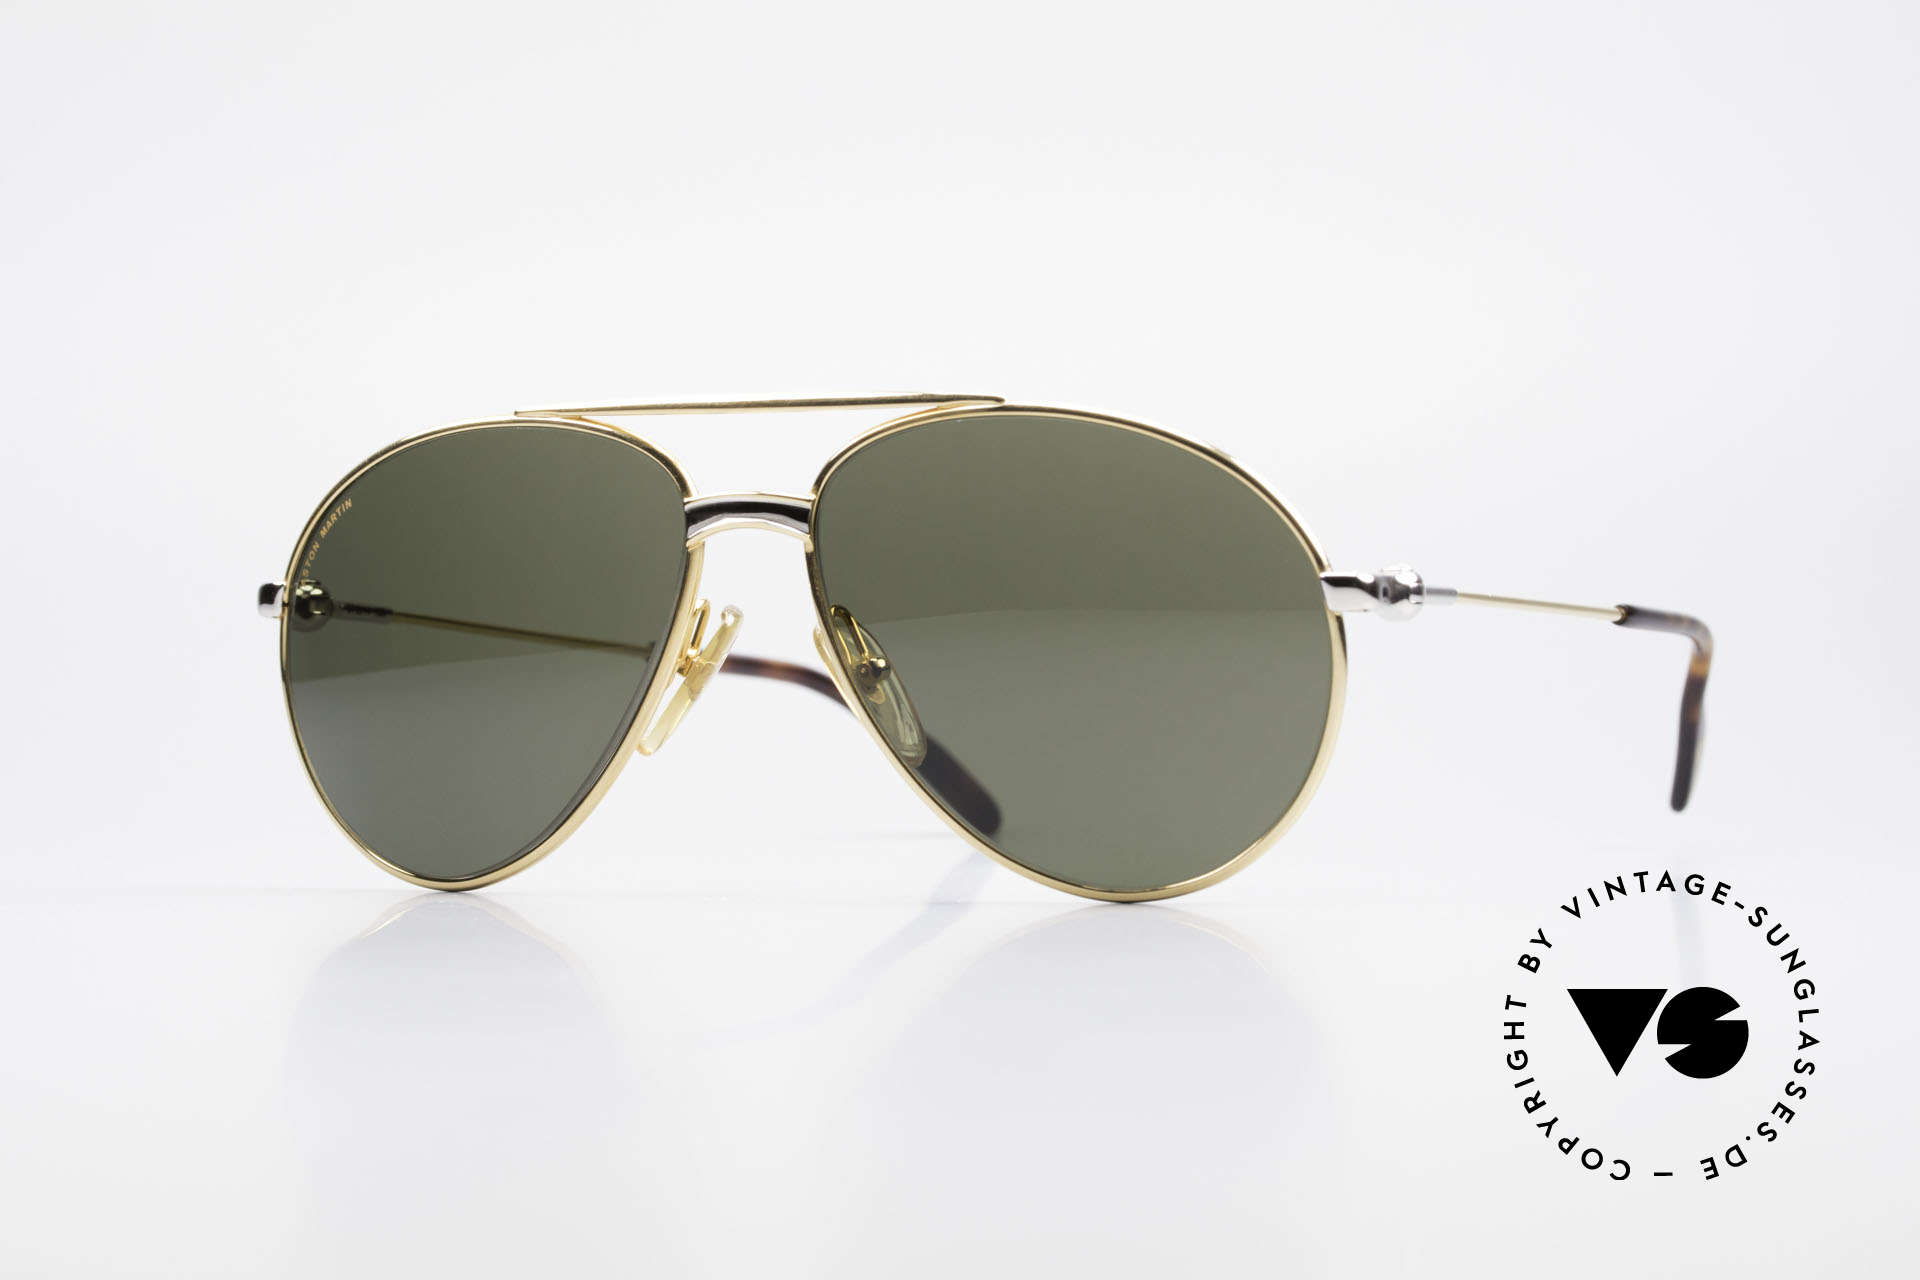 Aston Martin AM02 Aviator Shades James Bond Style, Aston Martin vintage luxury designer sunglasses, 57°14, Made for Men